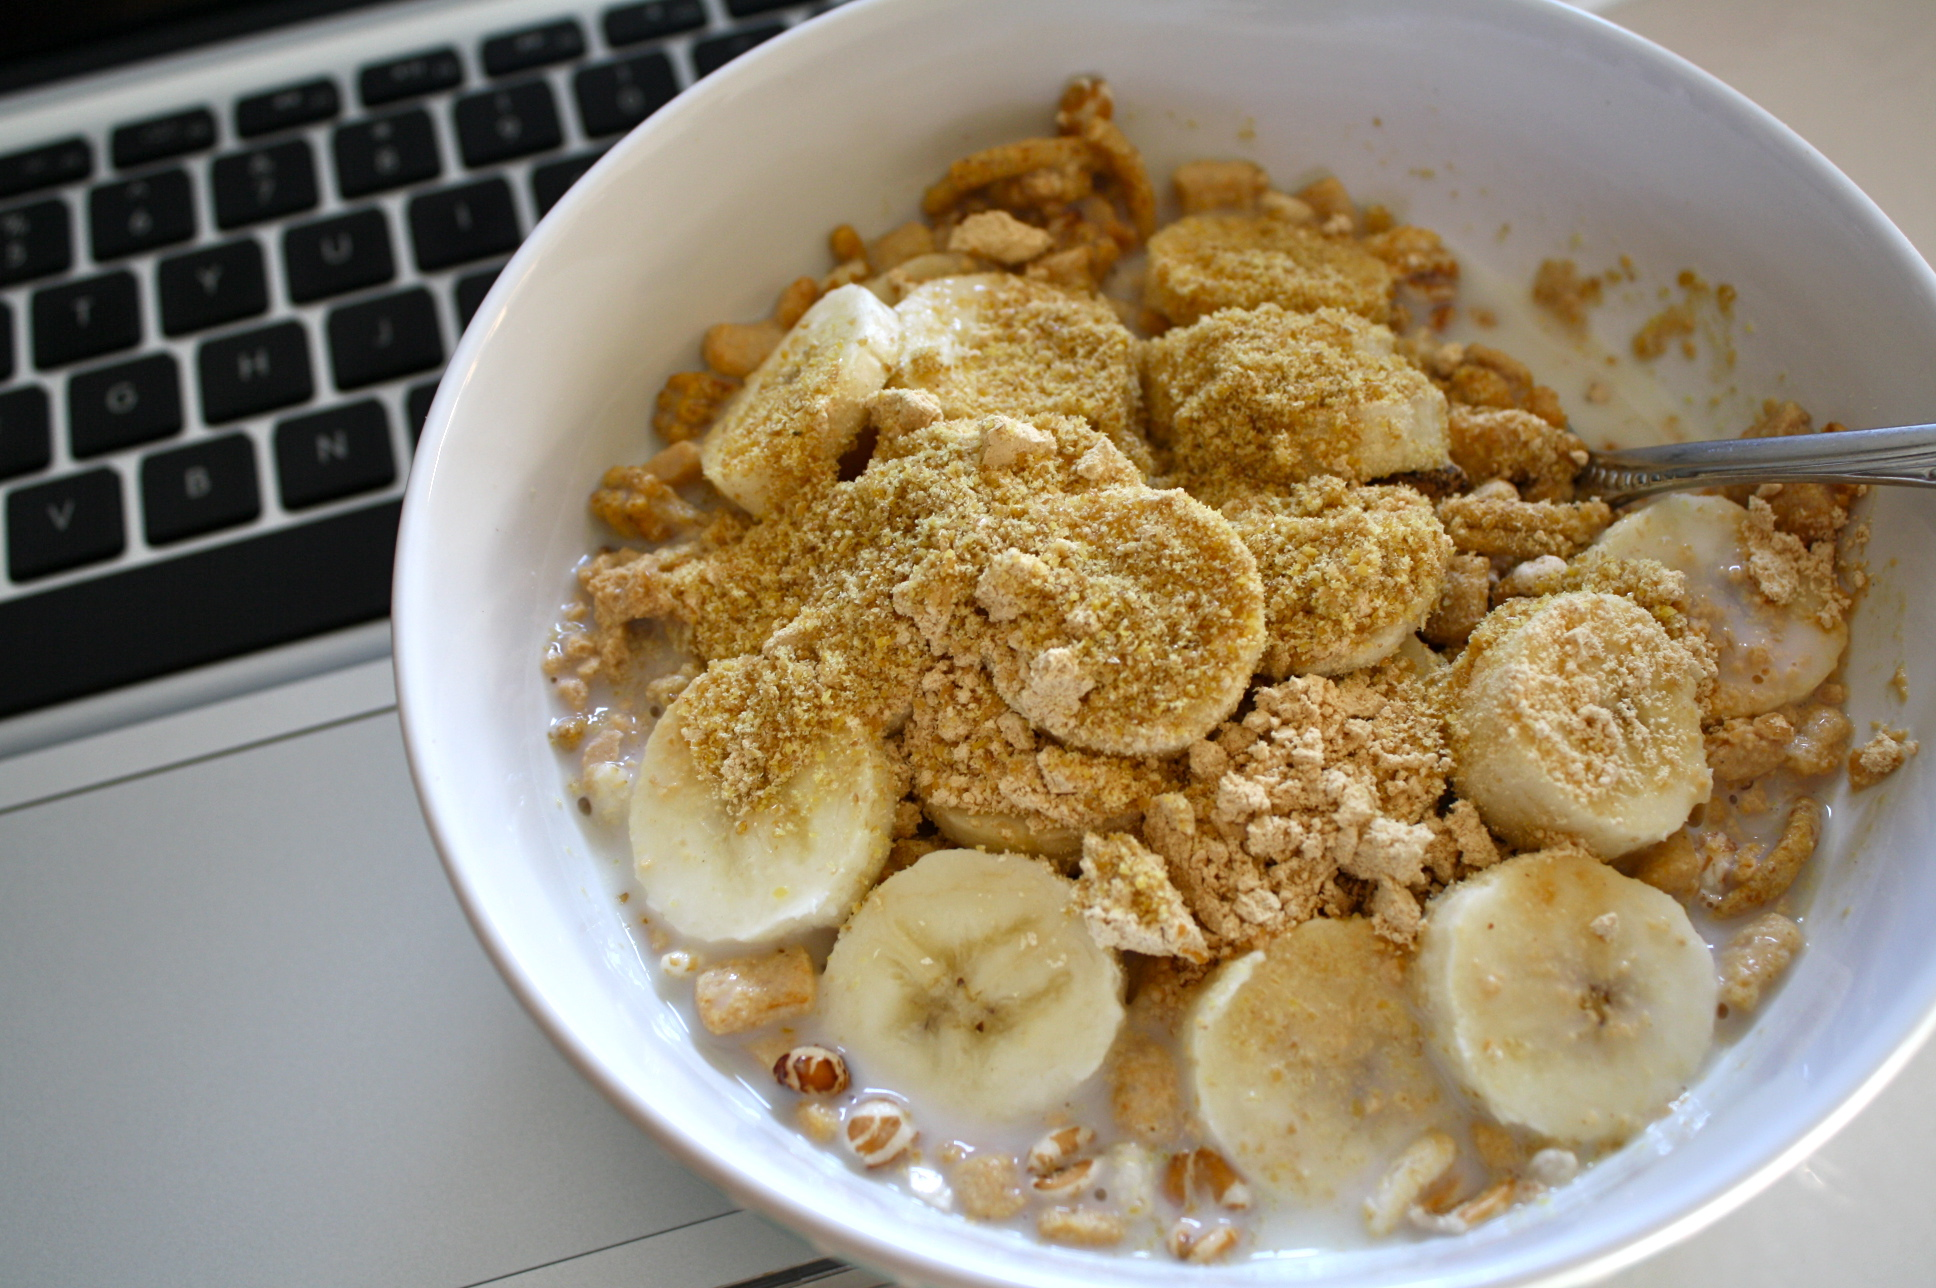 Cereal with Peanut Flour & Bananas